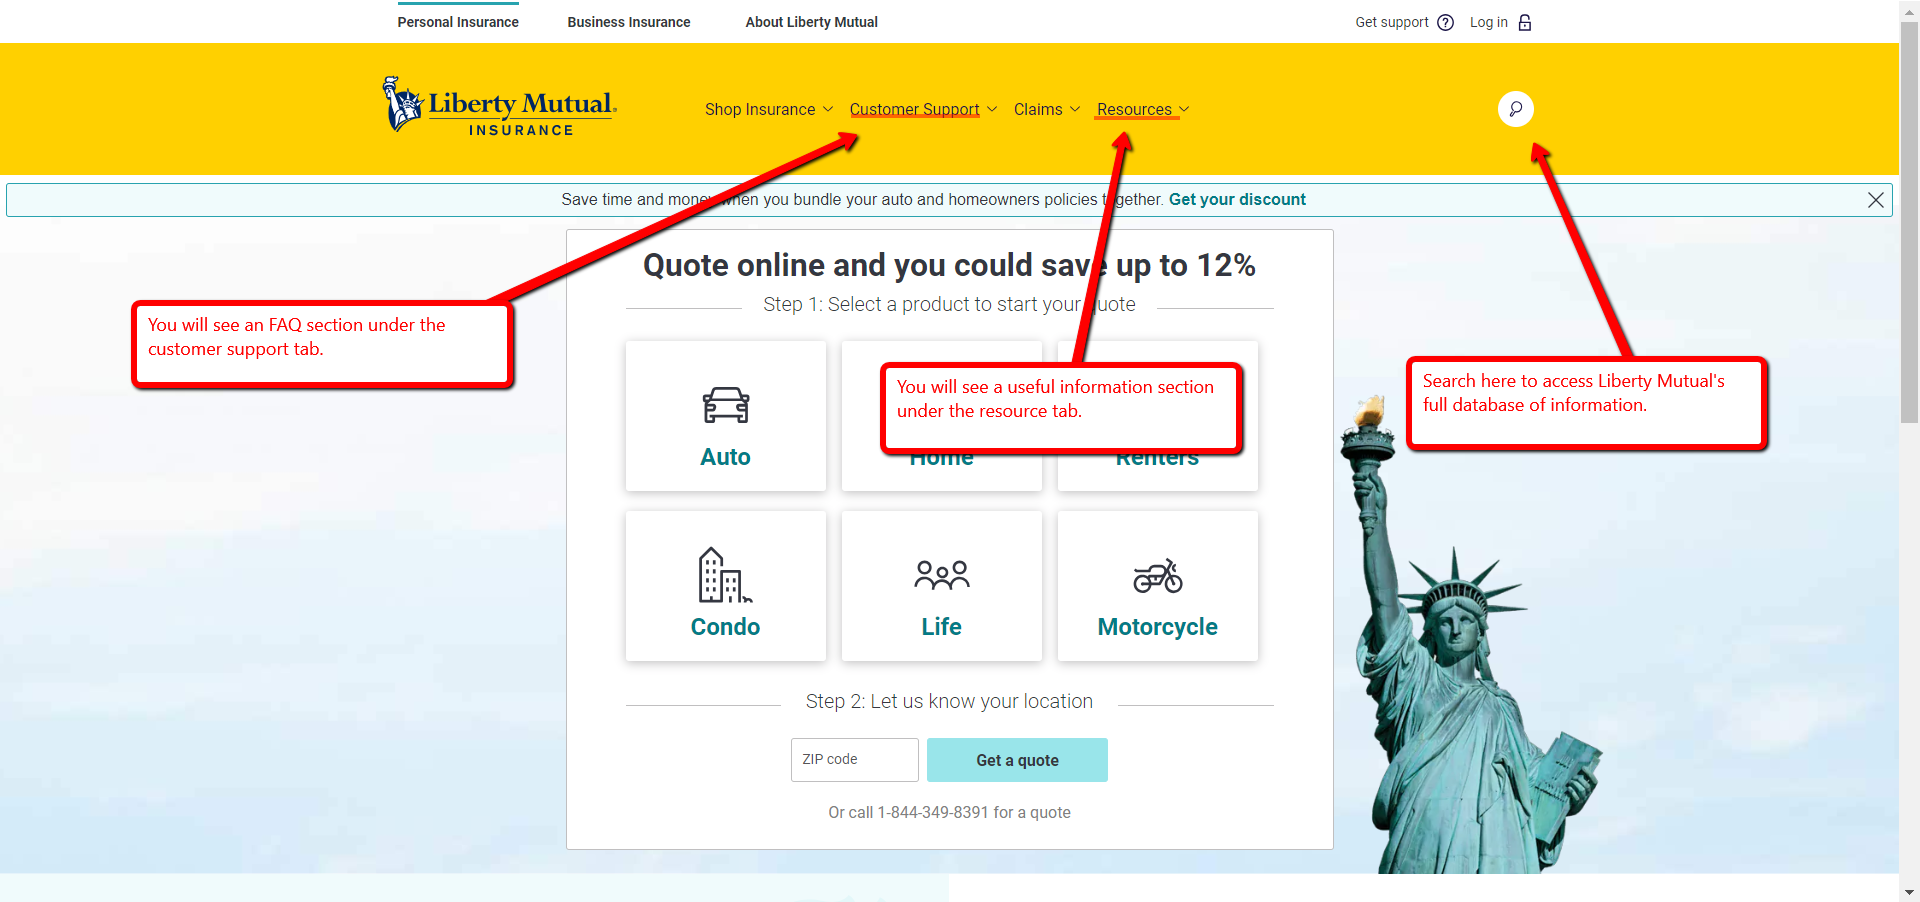 Liberty Mutual FAQ and Search Directions